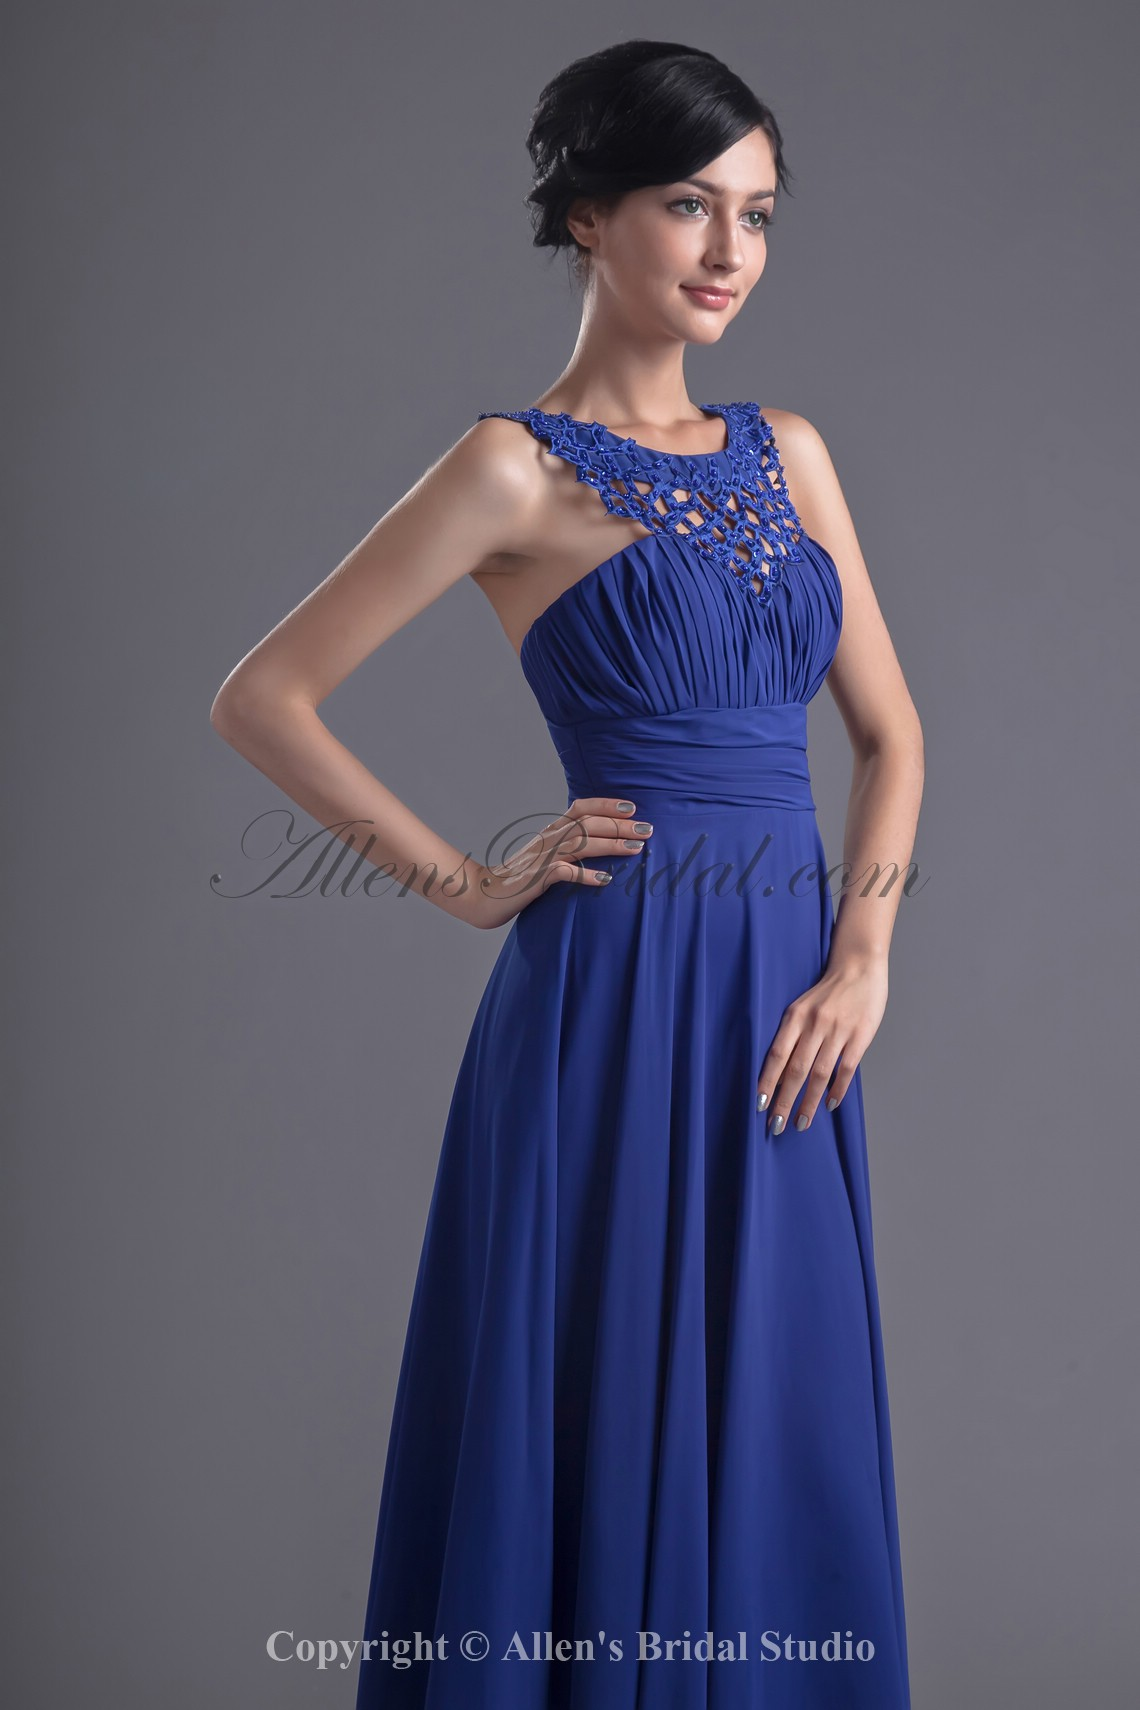 /21-164/chiffon-jewel-neckline-a-line-floor-length-beading-prom-dress.jpg